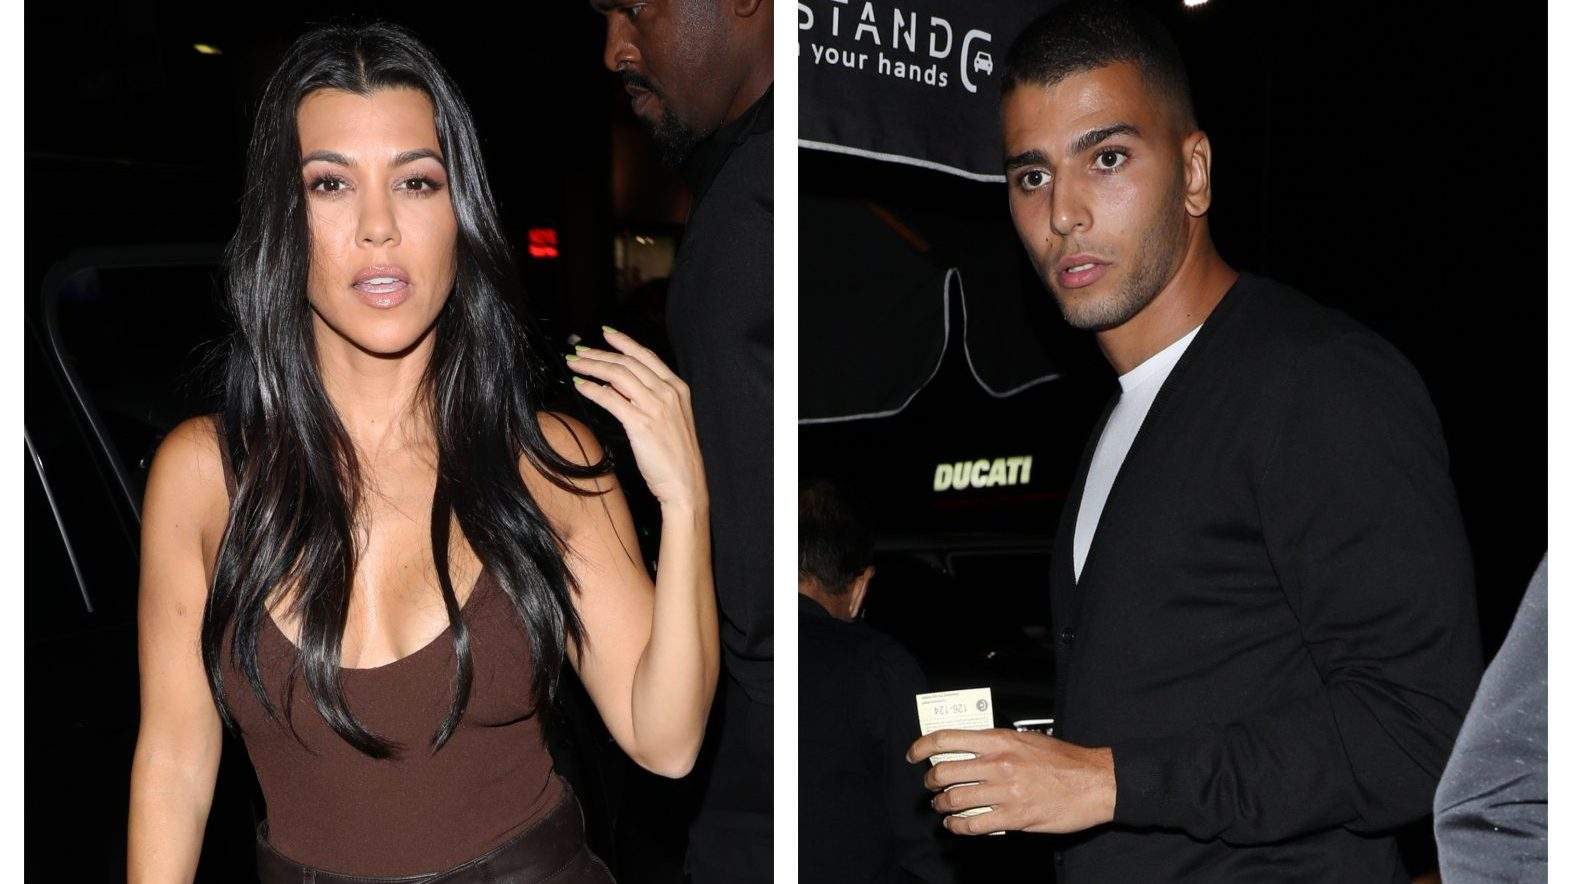 Kourtney Kardashian and Ex Younes Bendjima Reunite at Nice Guy's in L.A. and We're a Little Shook